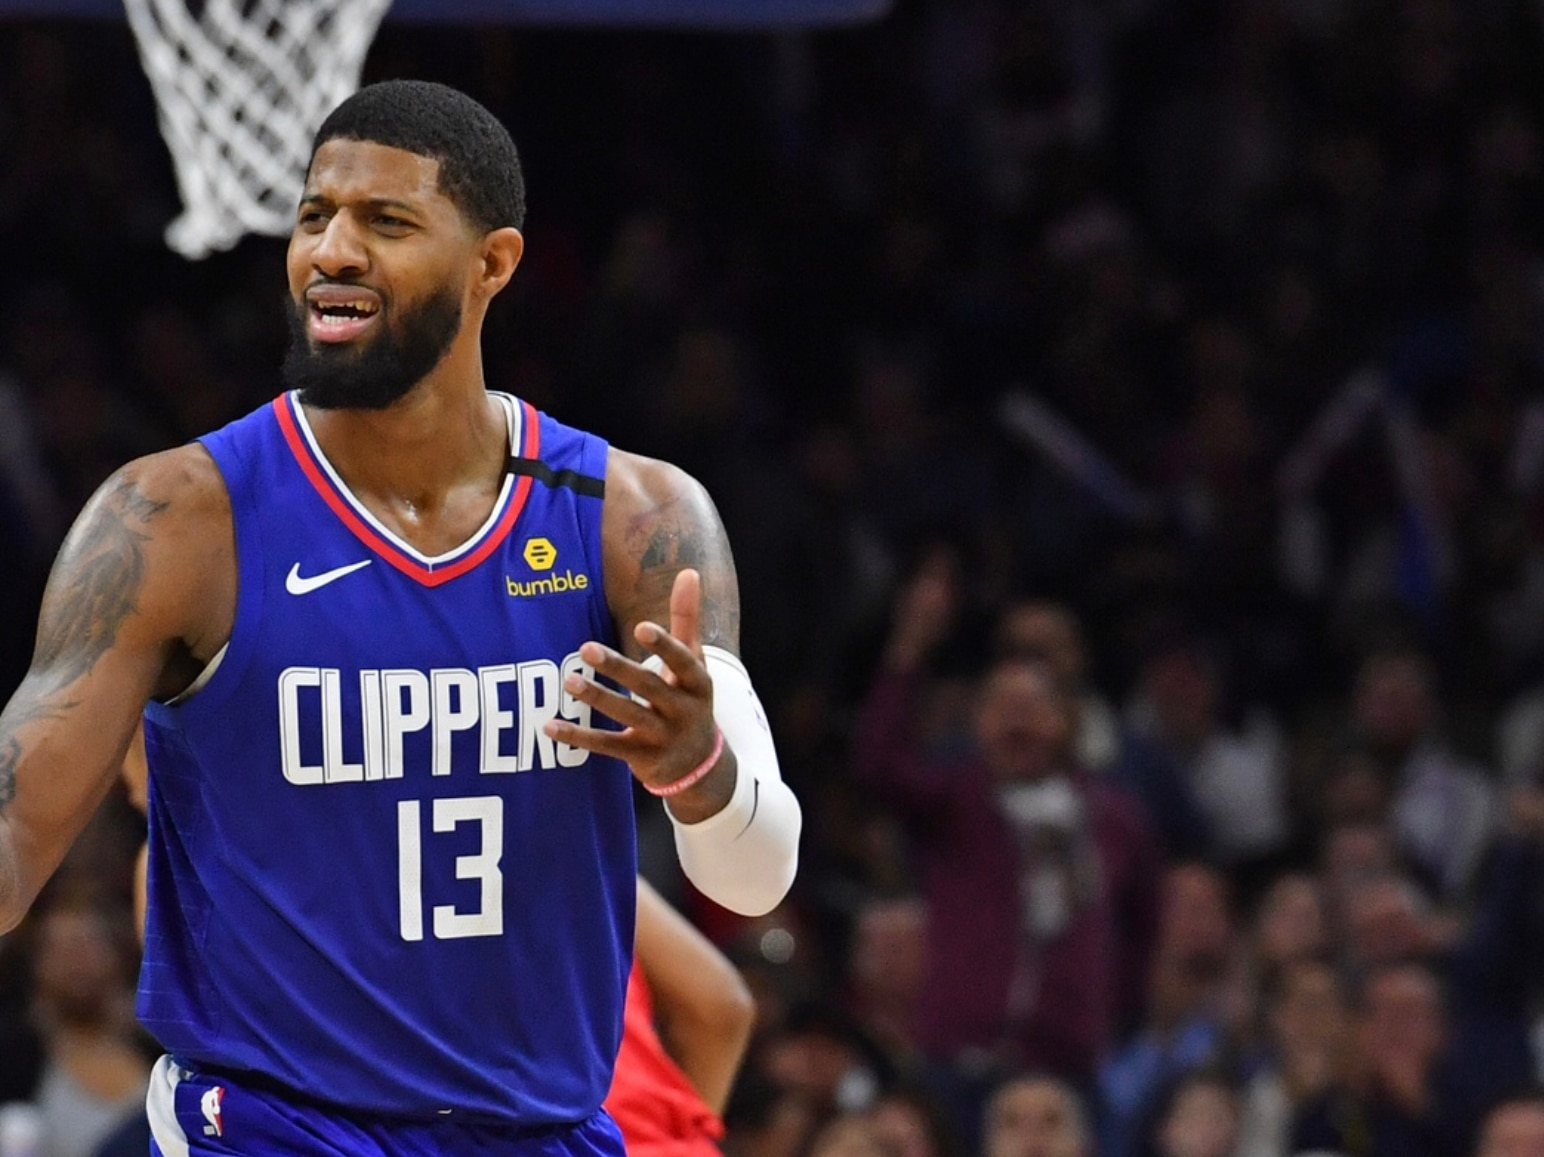 NBA fines Clippers Paul George $35,000 for criticizing officials